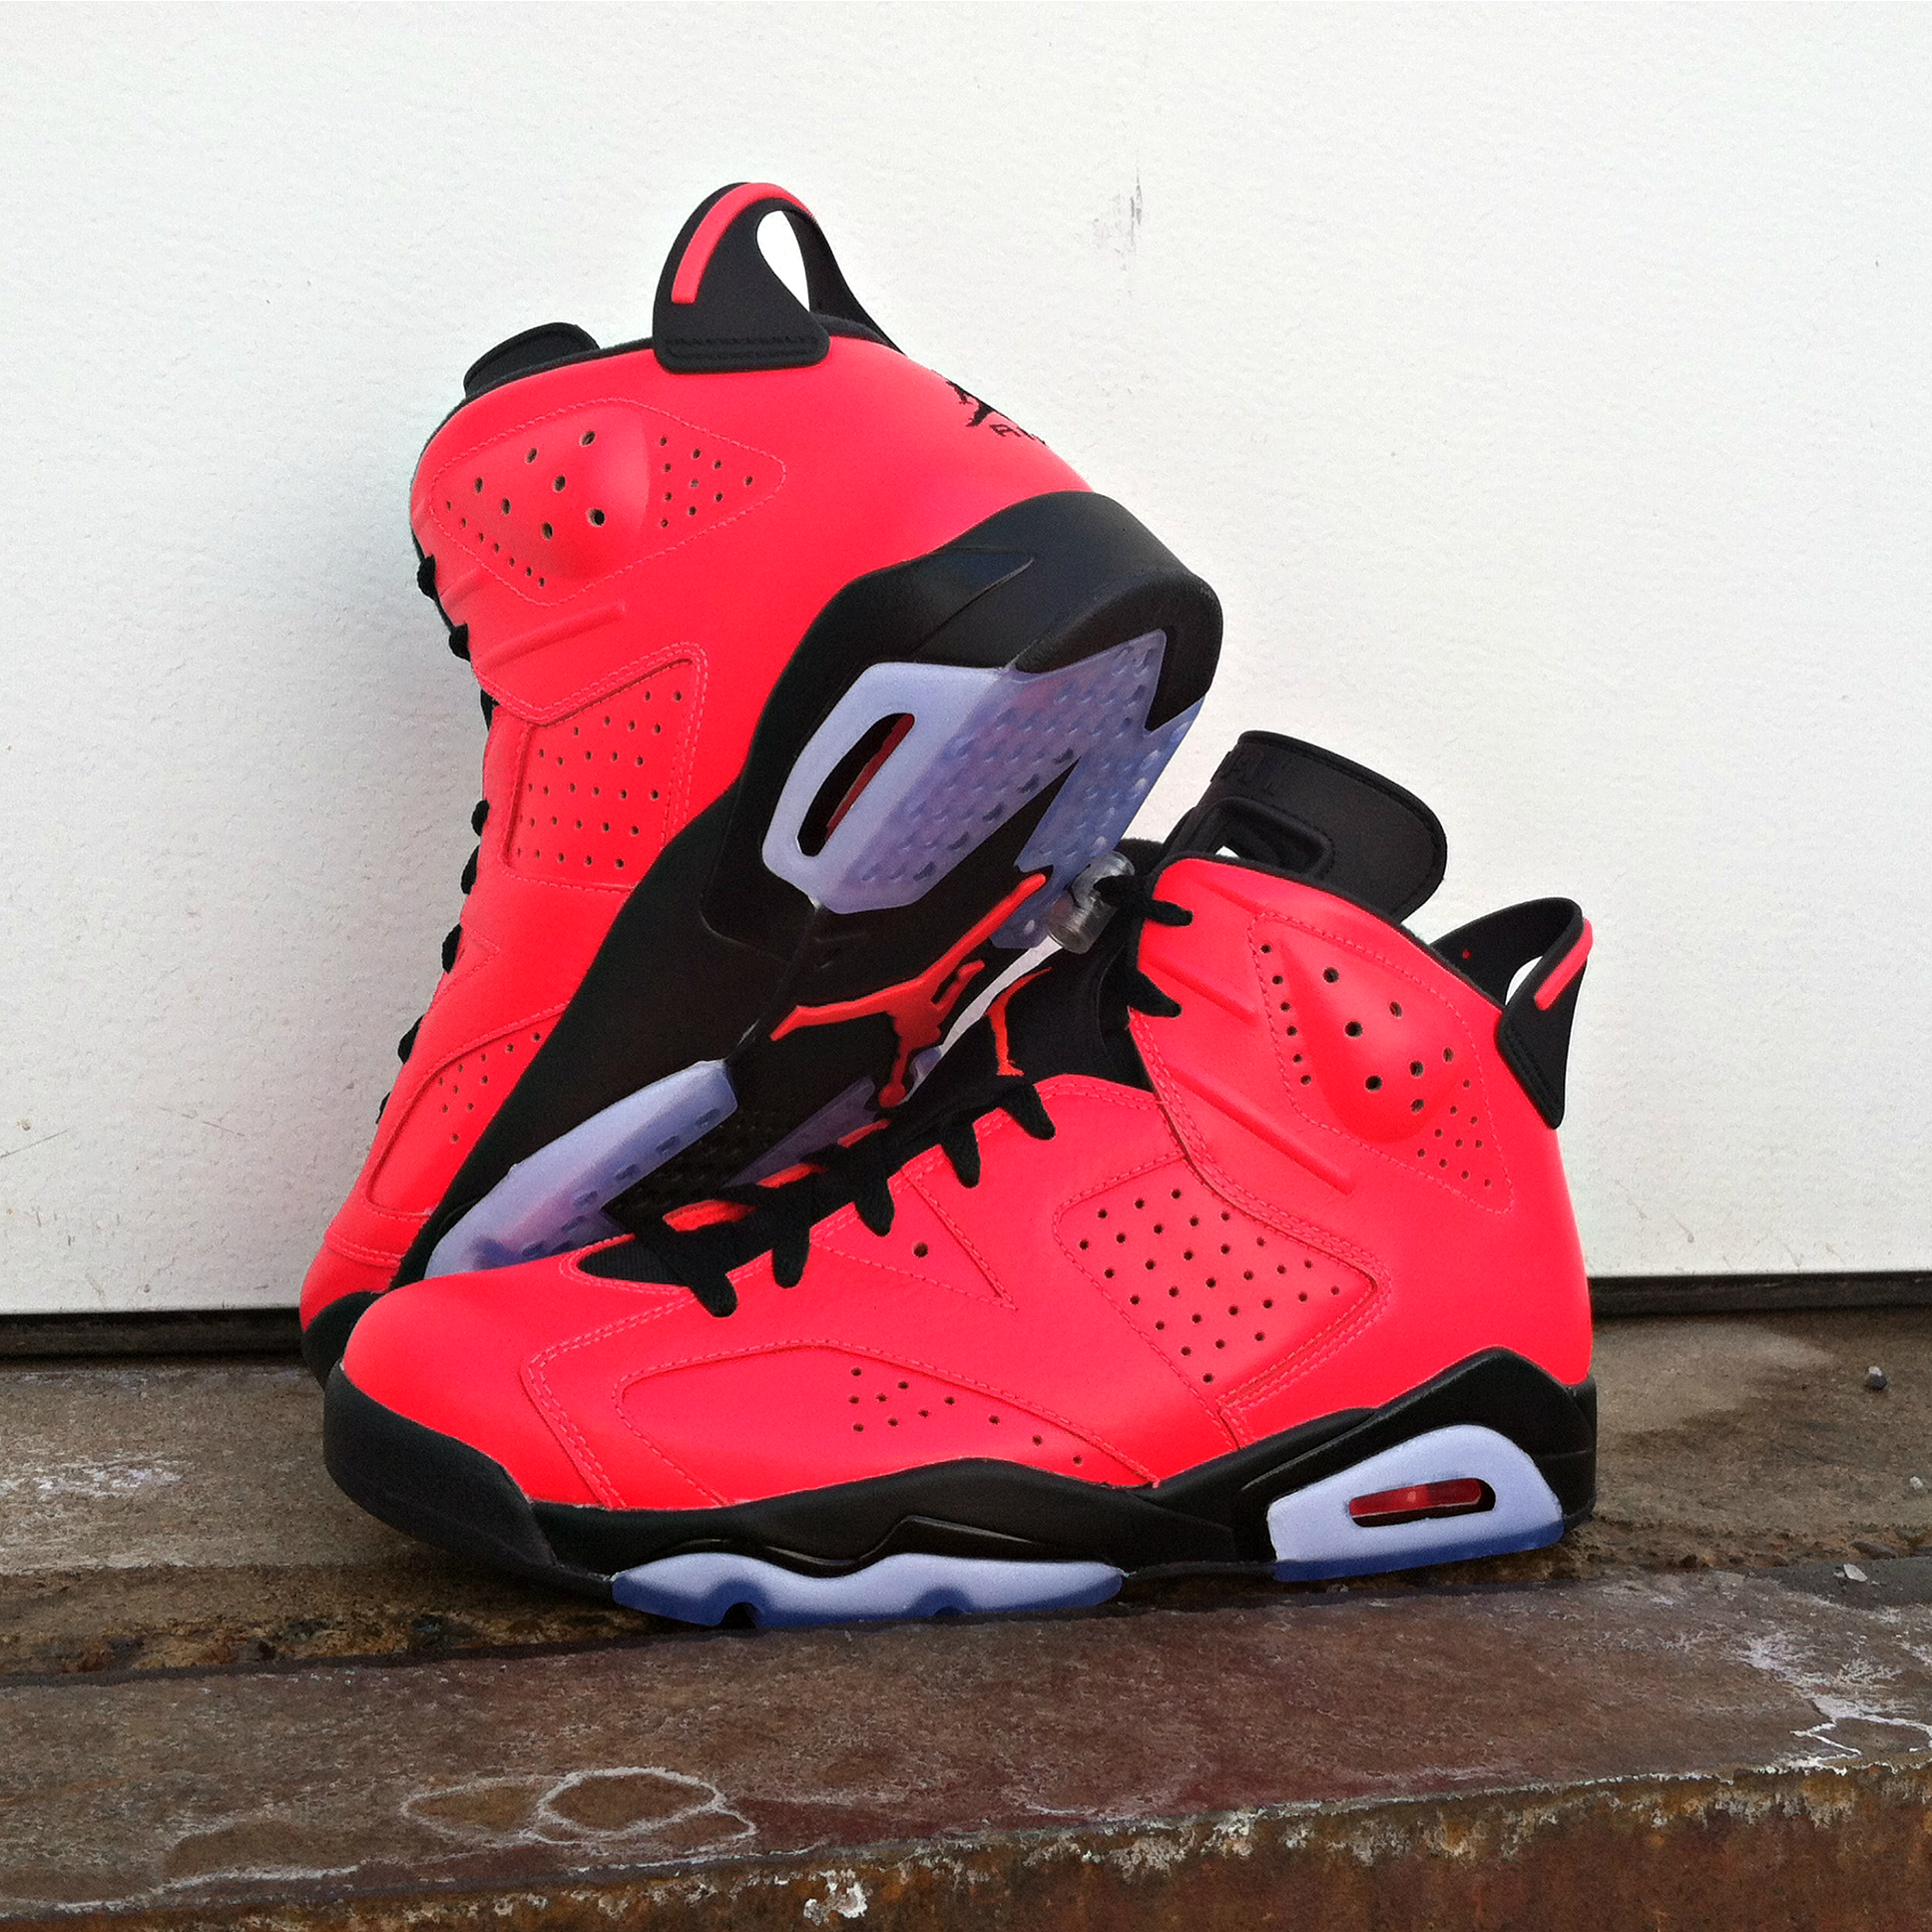 46aa94049d6  ReleaseReport  Jordan Retro 6 in black and infrared drops February 15th.  Is this look a must-cop